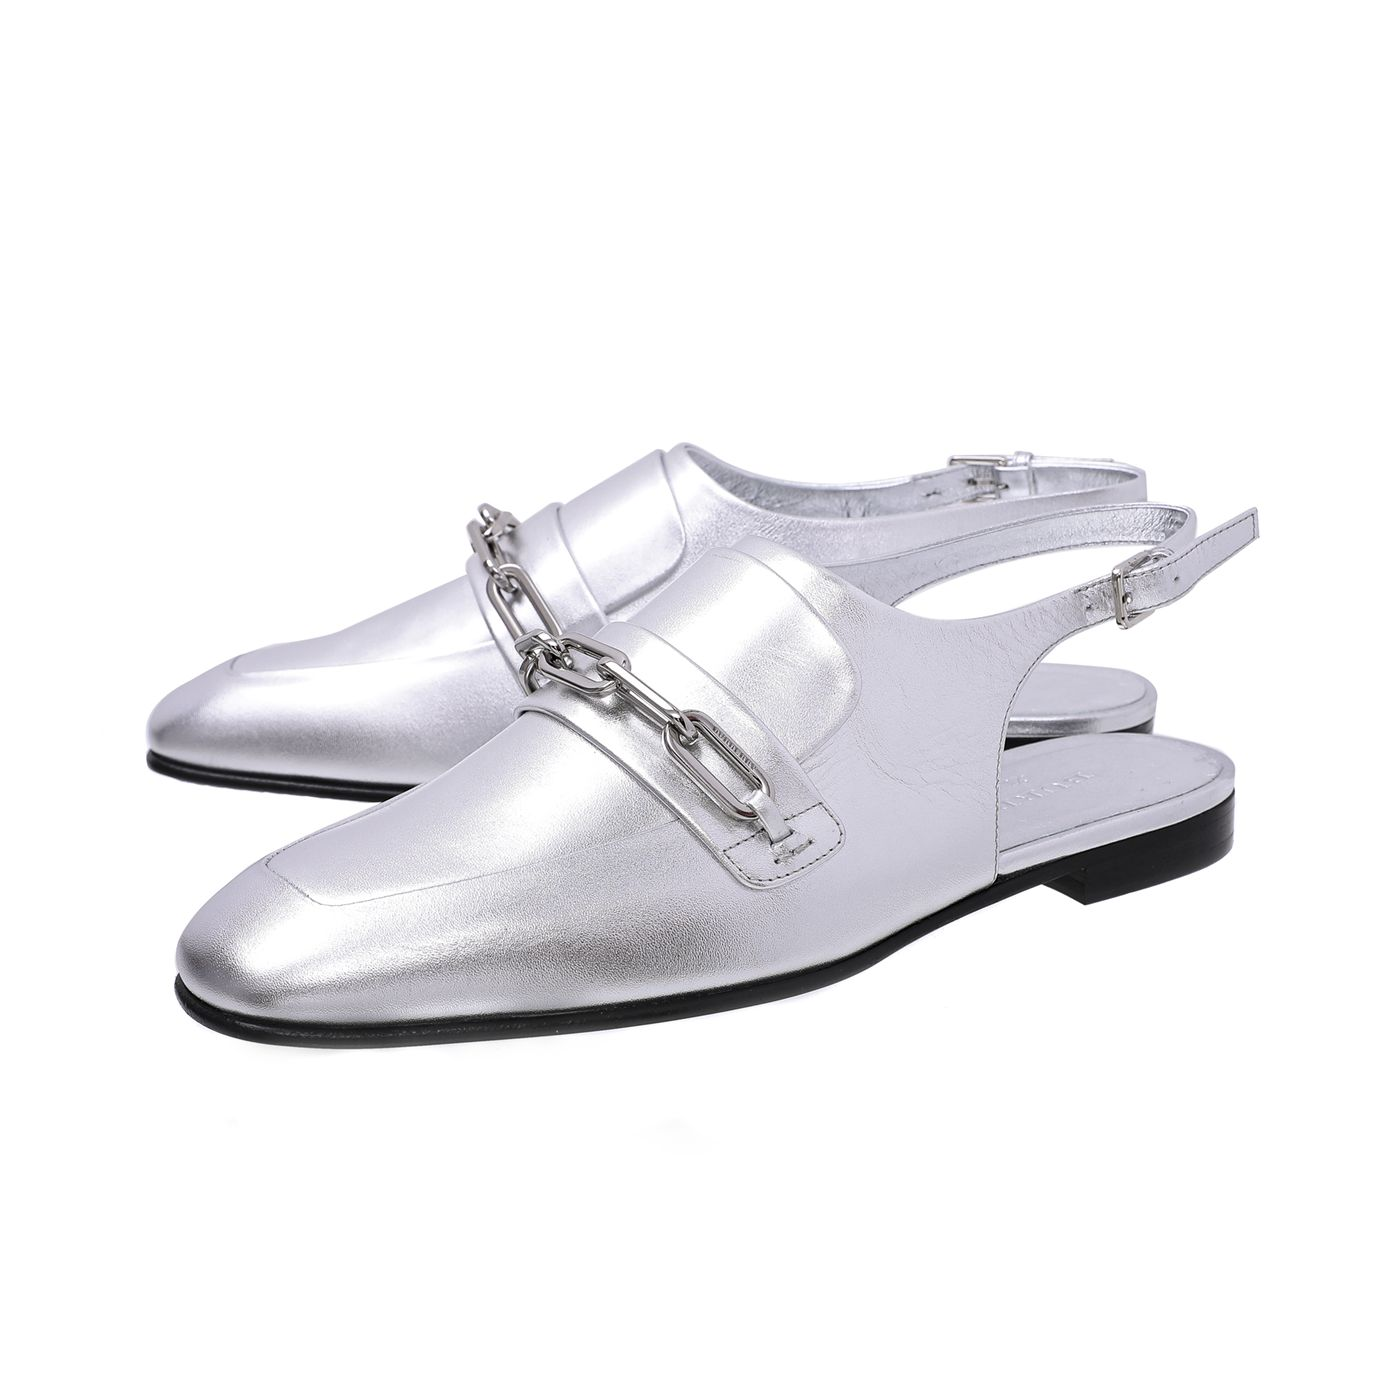 Burberry Silver Grey Cheltown Metallic Slingback Loafers 38.5